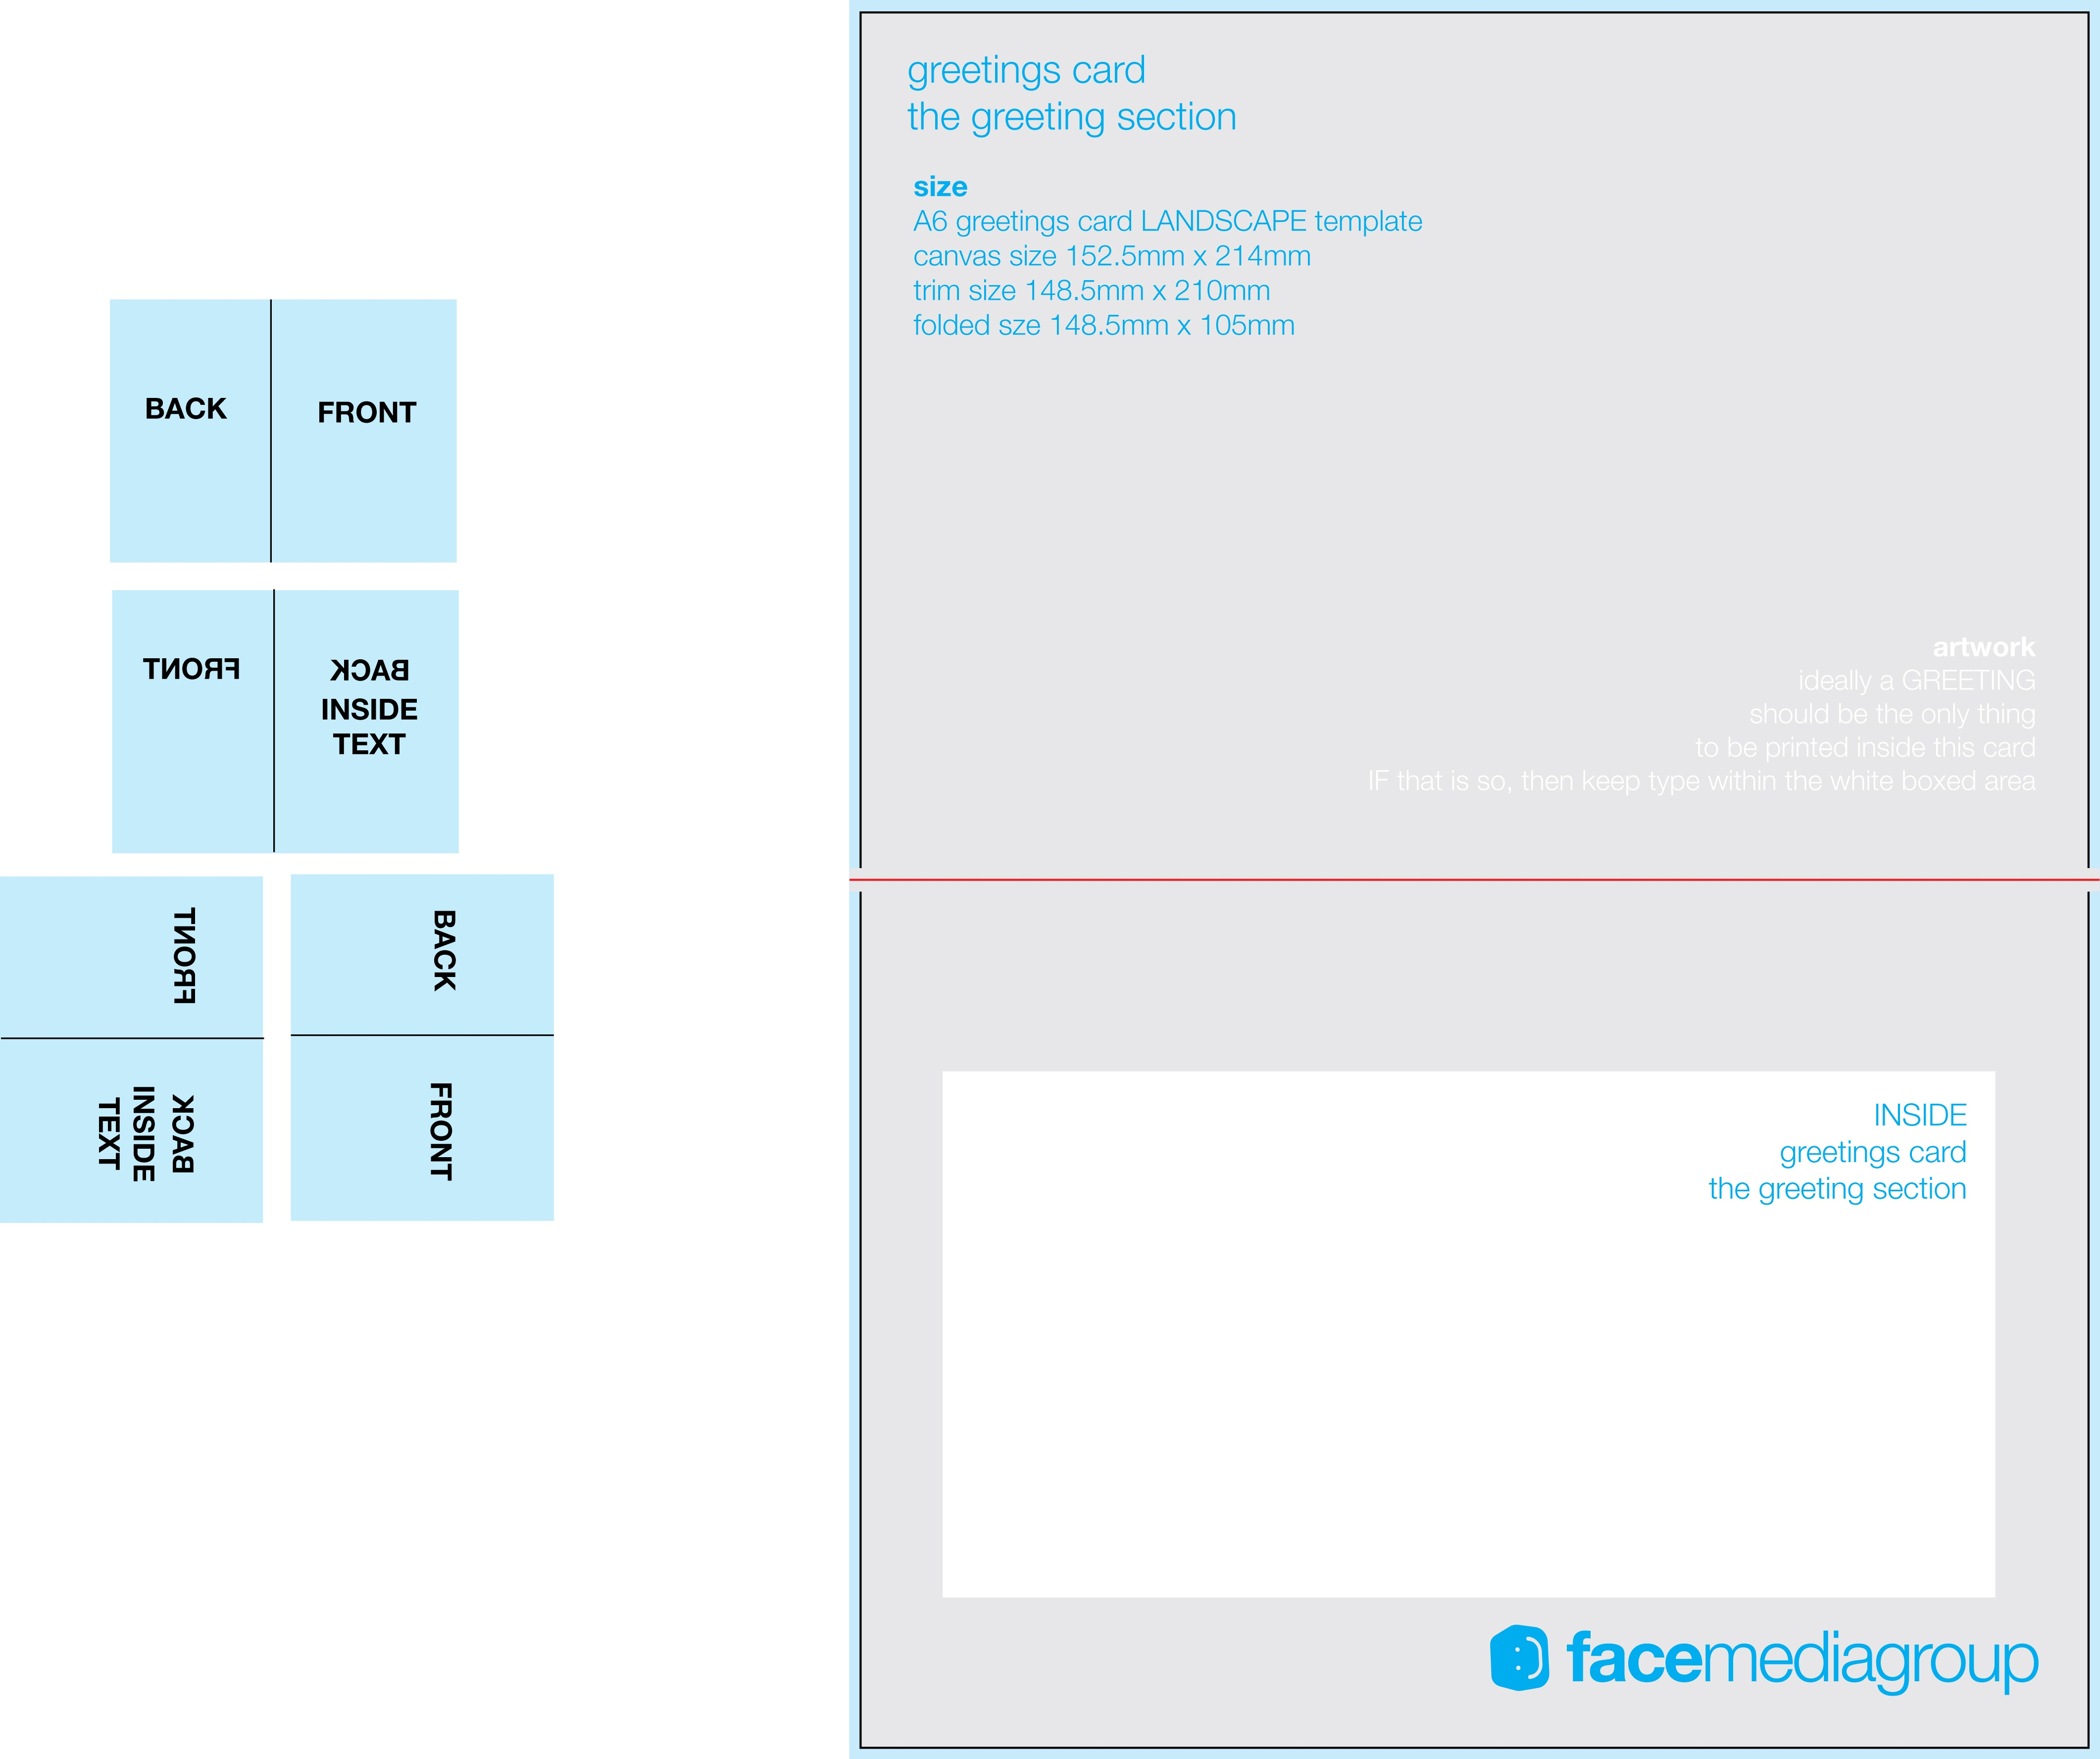 Free Blank Greetings Card Artwork Templates For Download   Face - Free Printable Greeting Card Templates